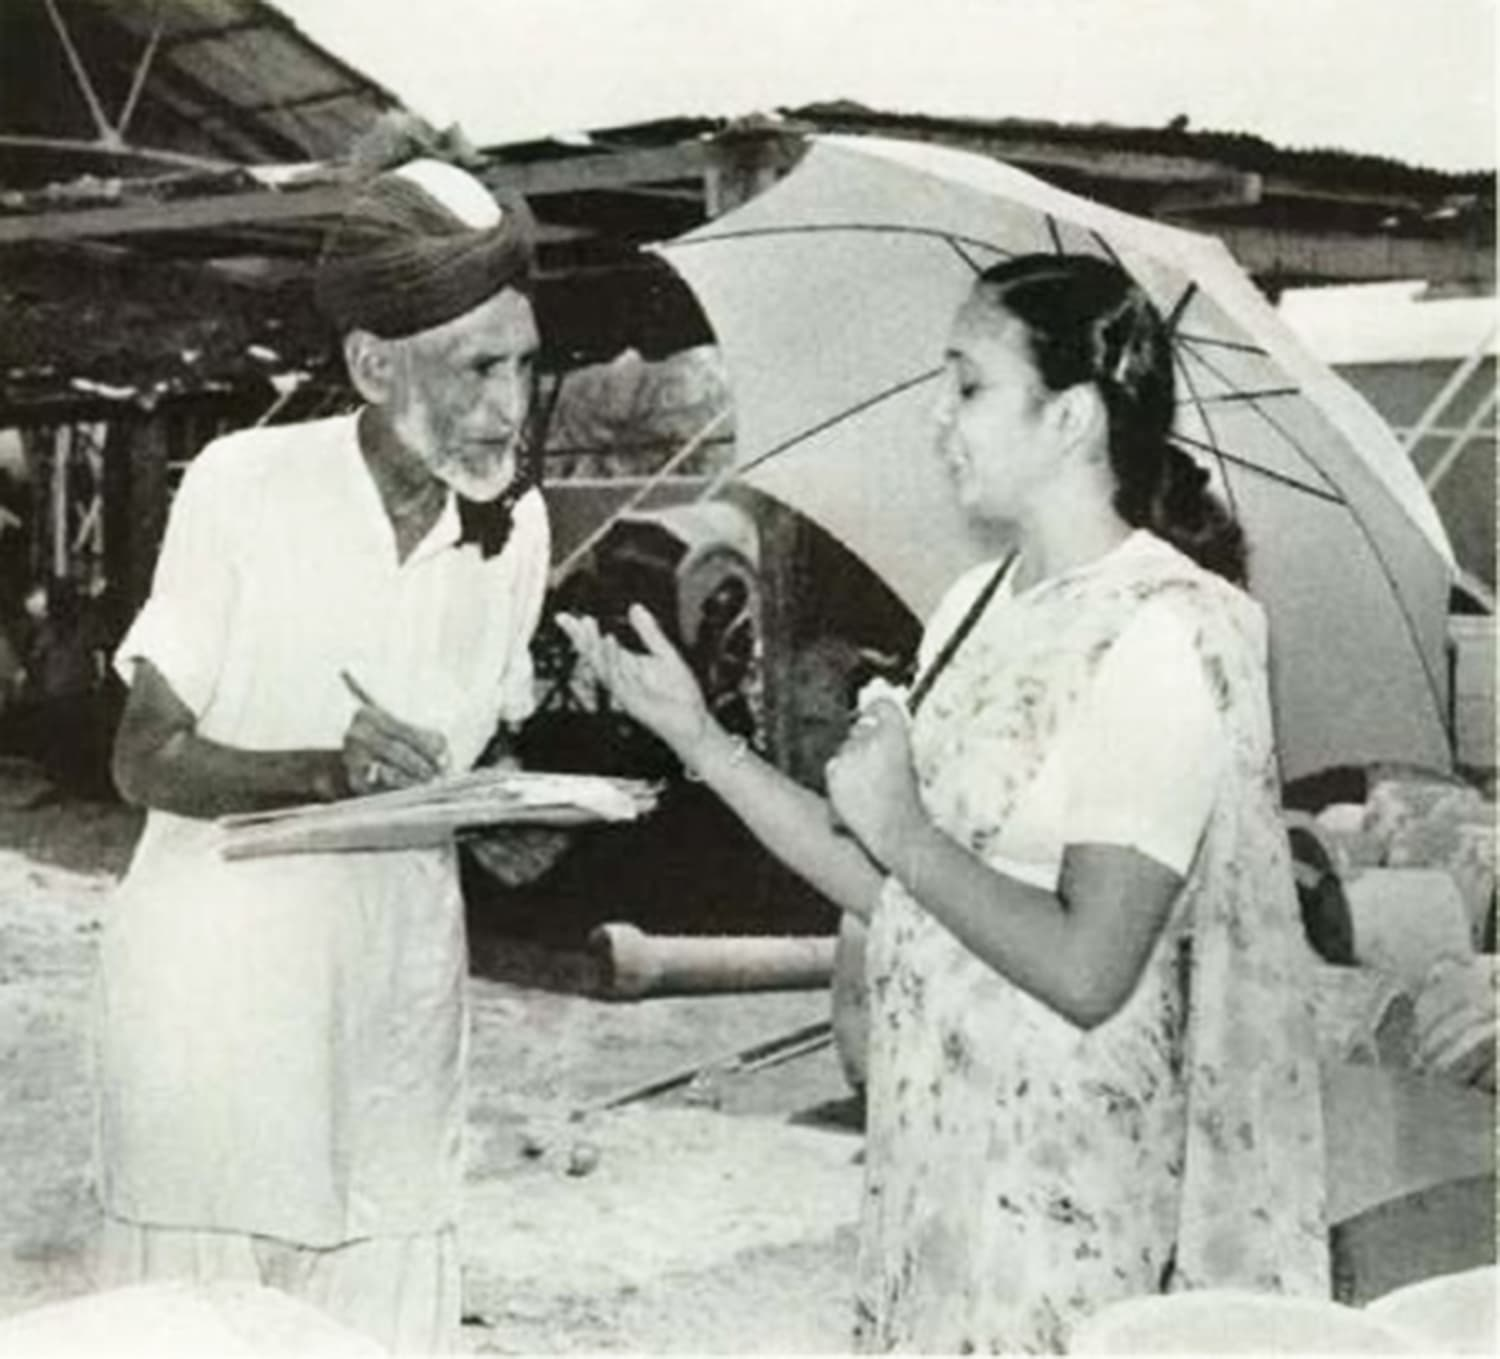 Pakistan's first leading female industrialist, Razia Ghulam Ali, giving instructions to an employee at her factory in Karachi. The Ayub regime had made Karachi the focus of its rapid industrialisation project.